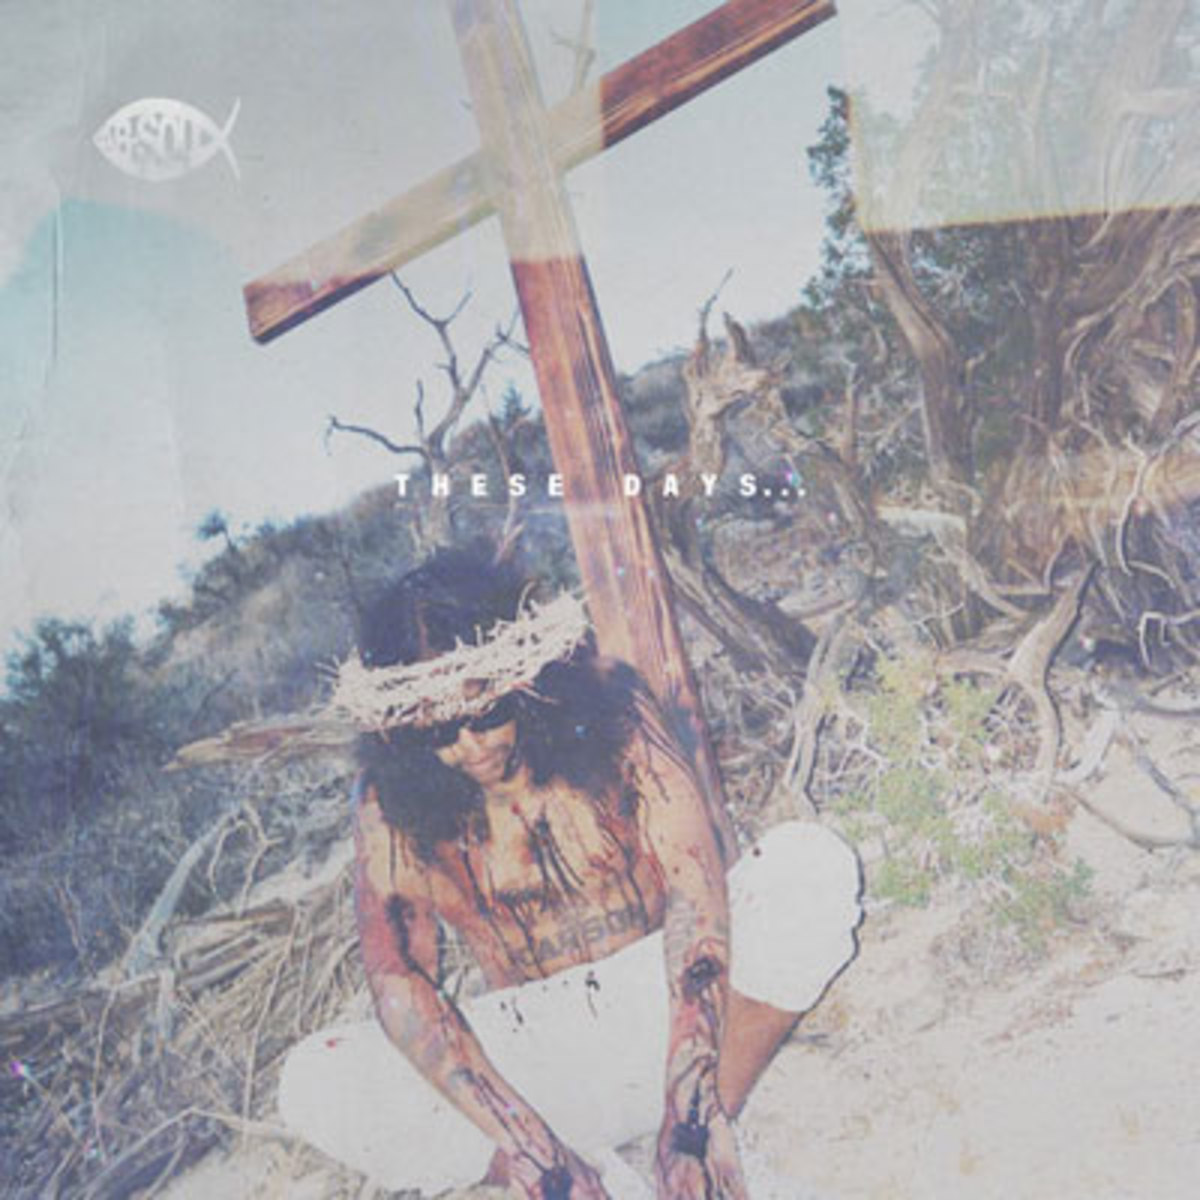 absoul-thesedays.jpg